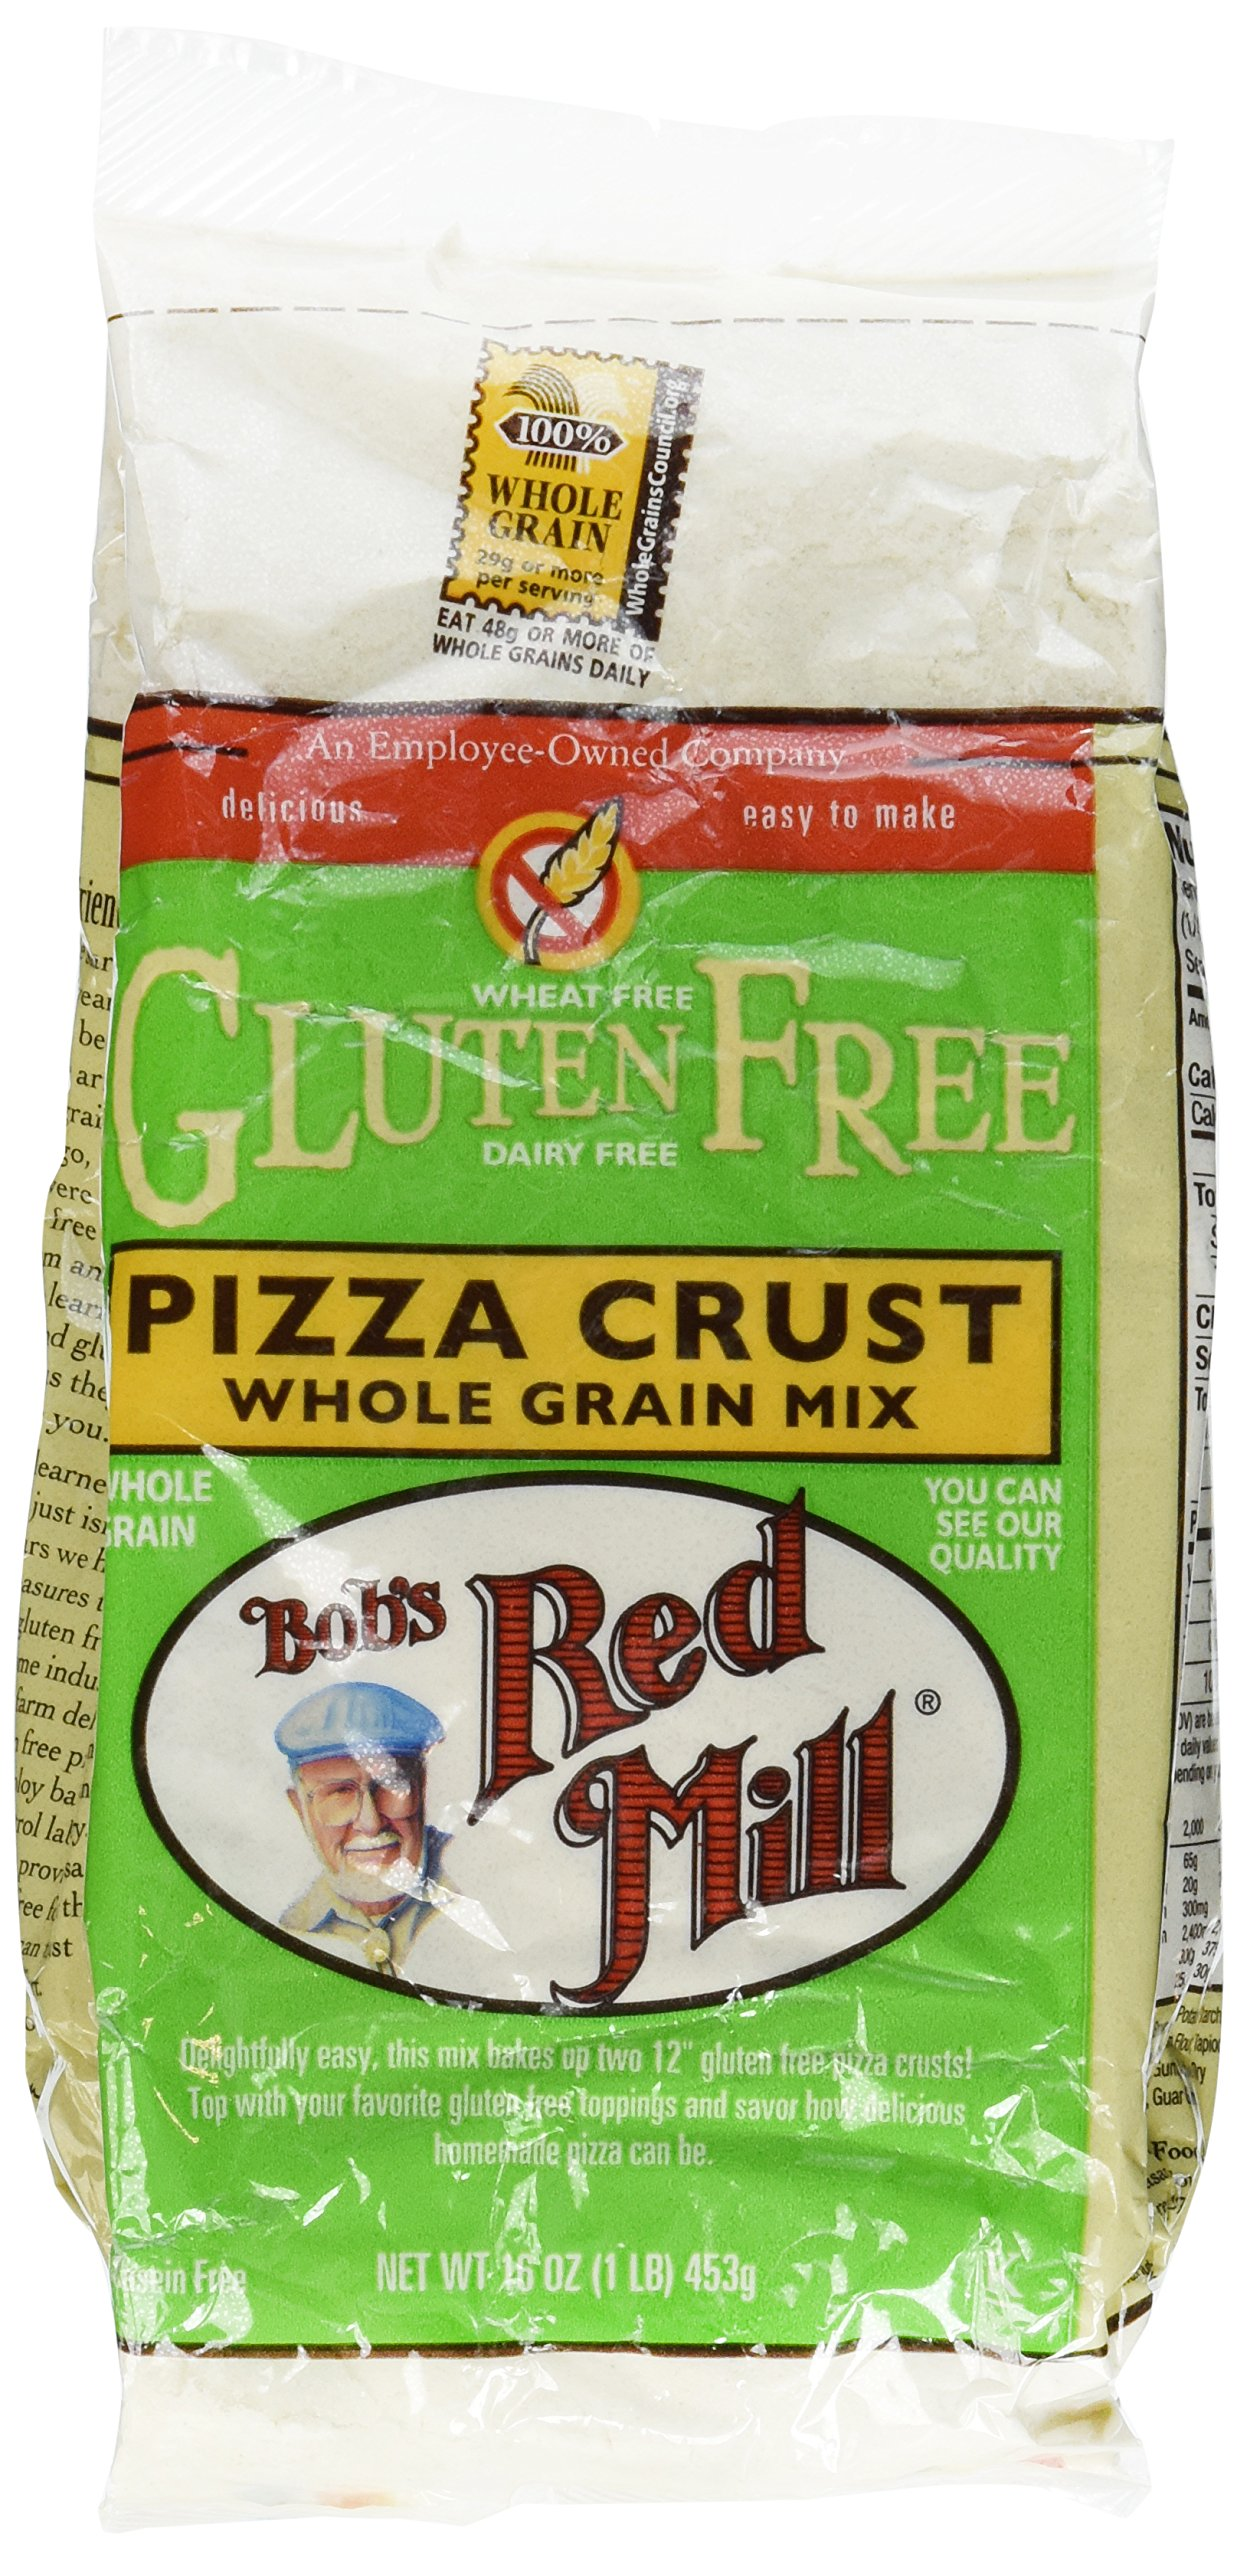 Bobs Red Mill Pizza Crust Mix Gluten Free (2x16 Oz) by Bob's Red Mill